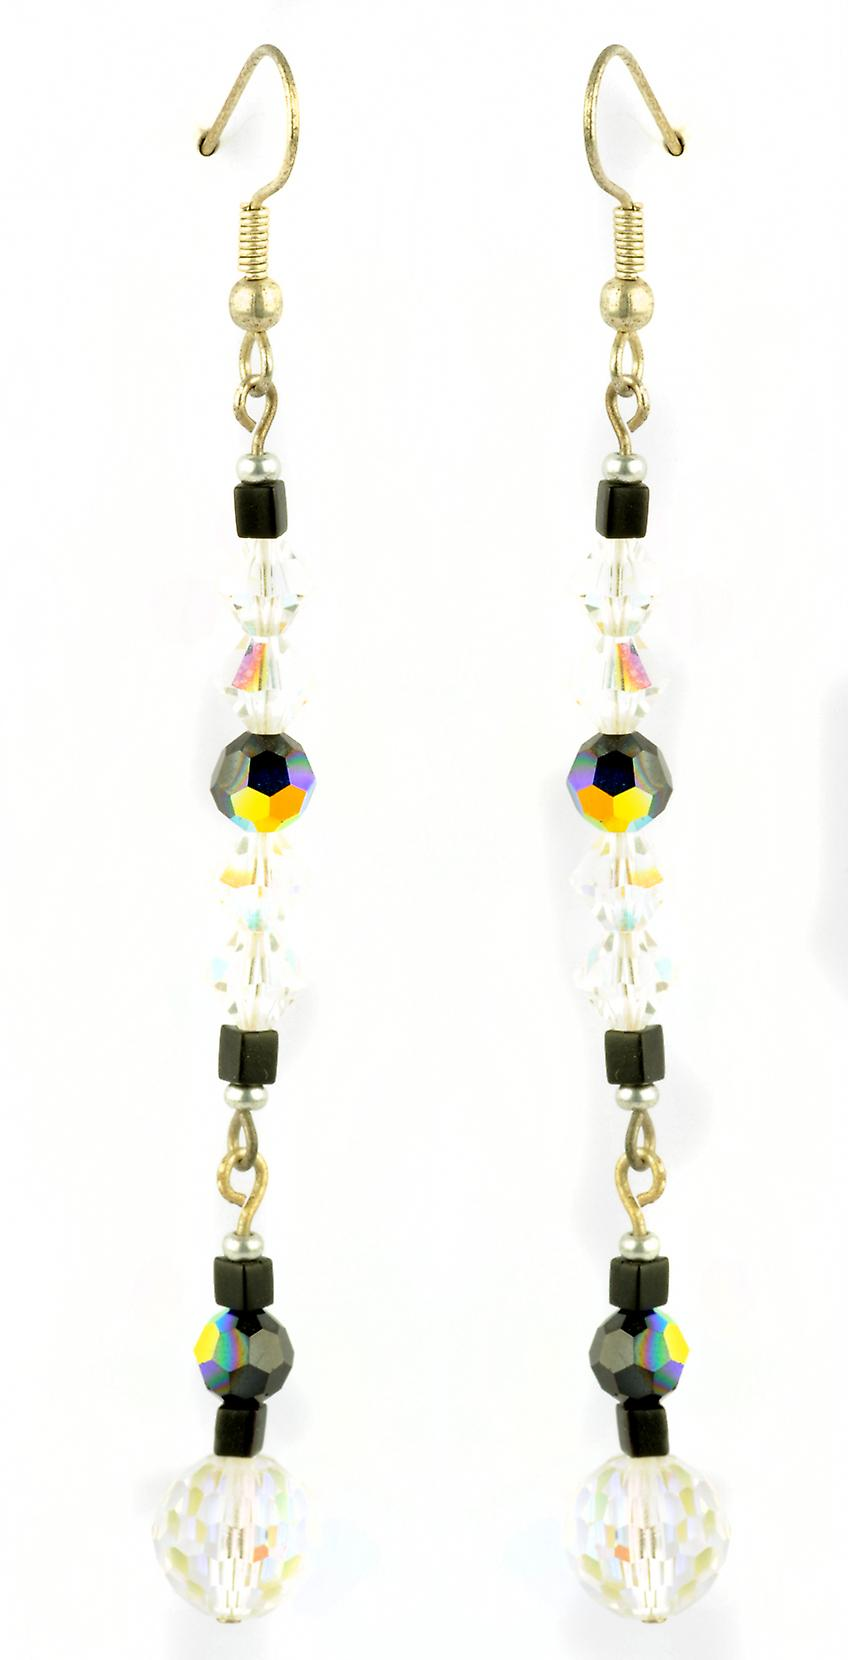 Waooh - Fashion Jewellery - WJ0765 - On Earrings with Swarovski Black & White Transparent - Frame Color Silver